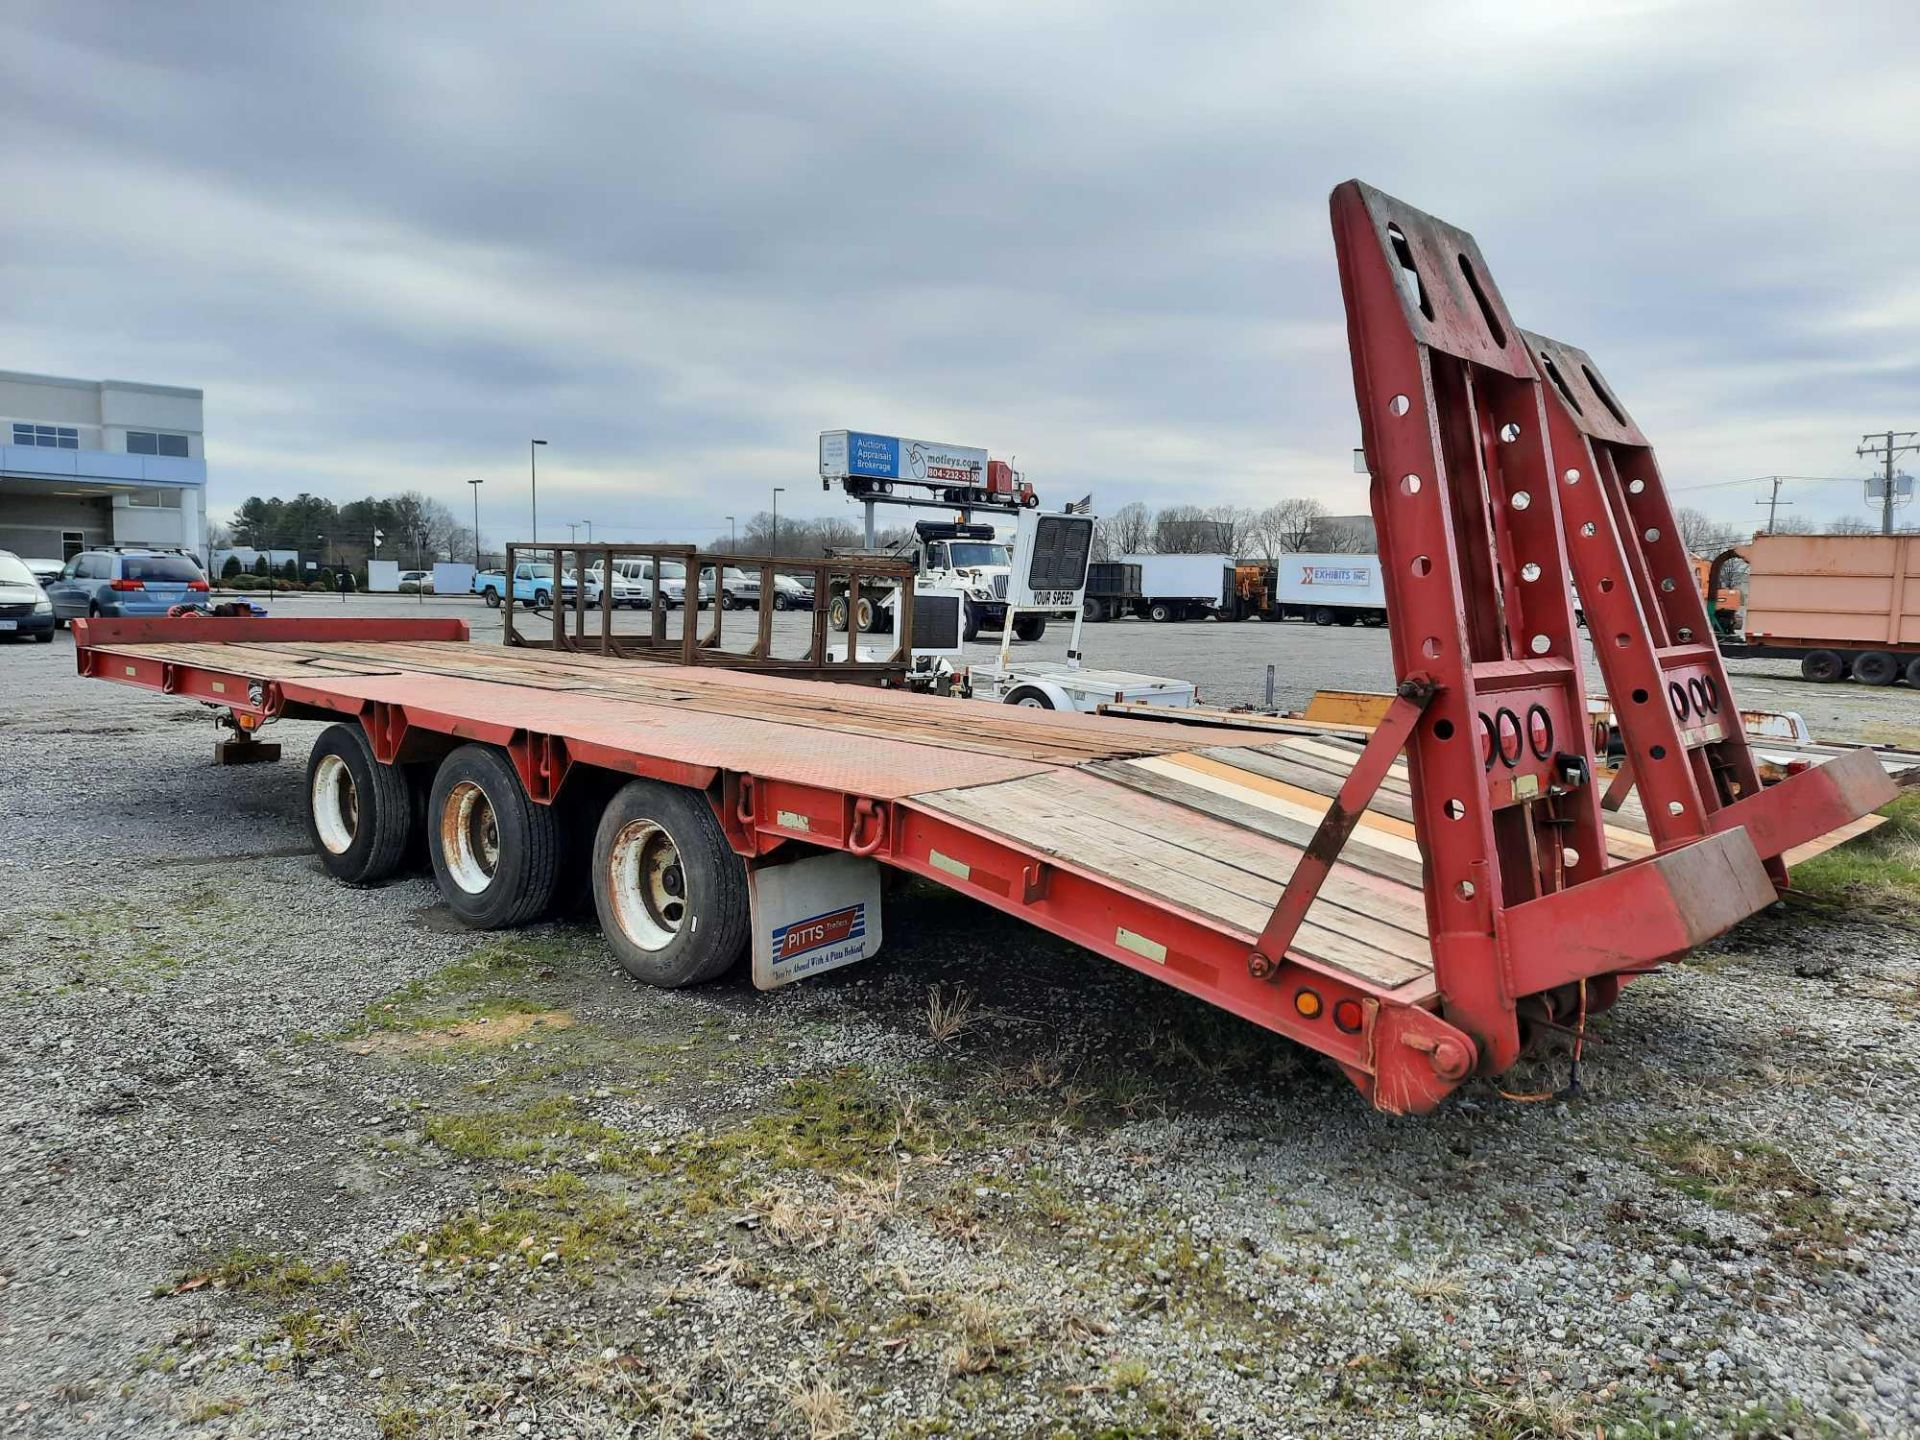 2004 PITTS TRI-AXLE TRAILER - Image 2 of 4